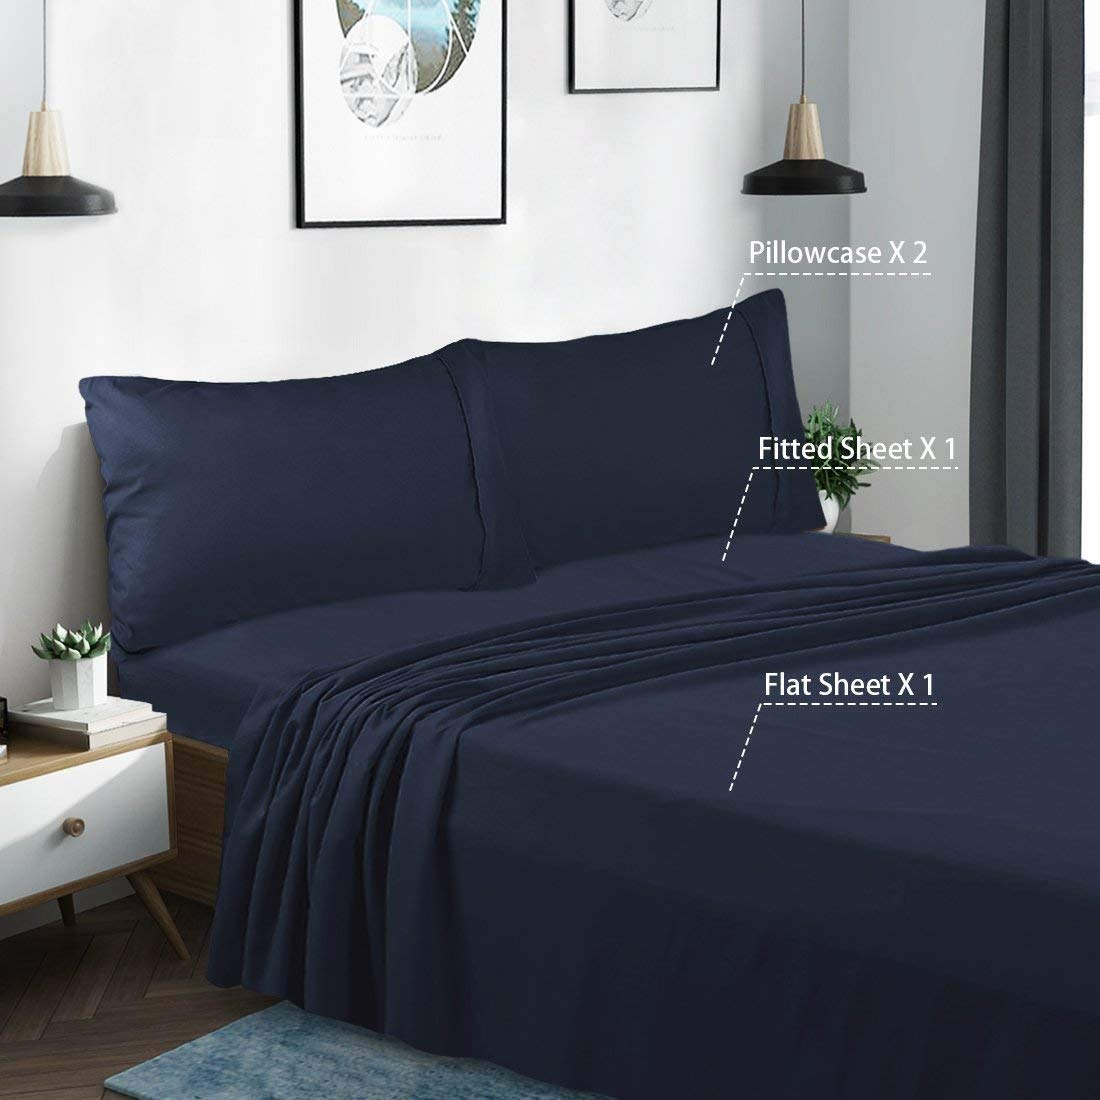 Breathable /& Soft 400 Thread Count WALETONE LINEN Full Size 4 PCs Bed Sheet Set Ivory Solid 100/% Pure Natural Cotton Durable Sheet Easy Fit 18 Deep Pockets